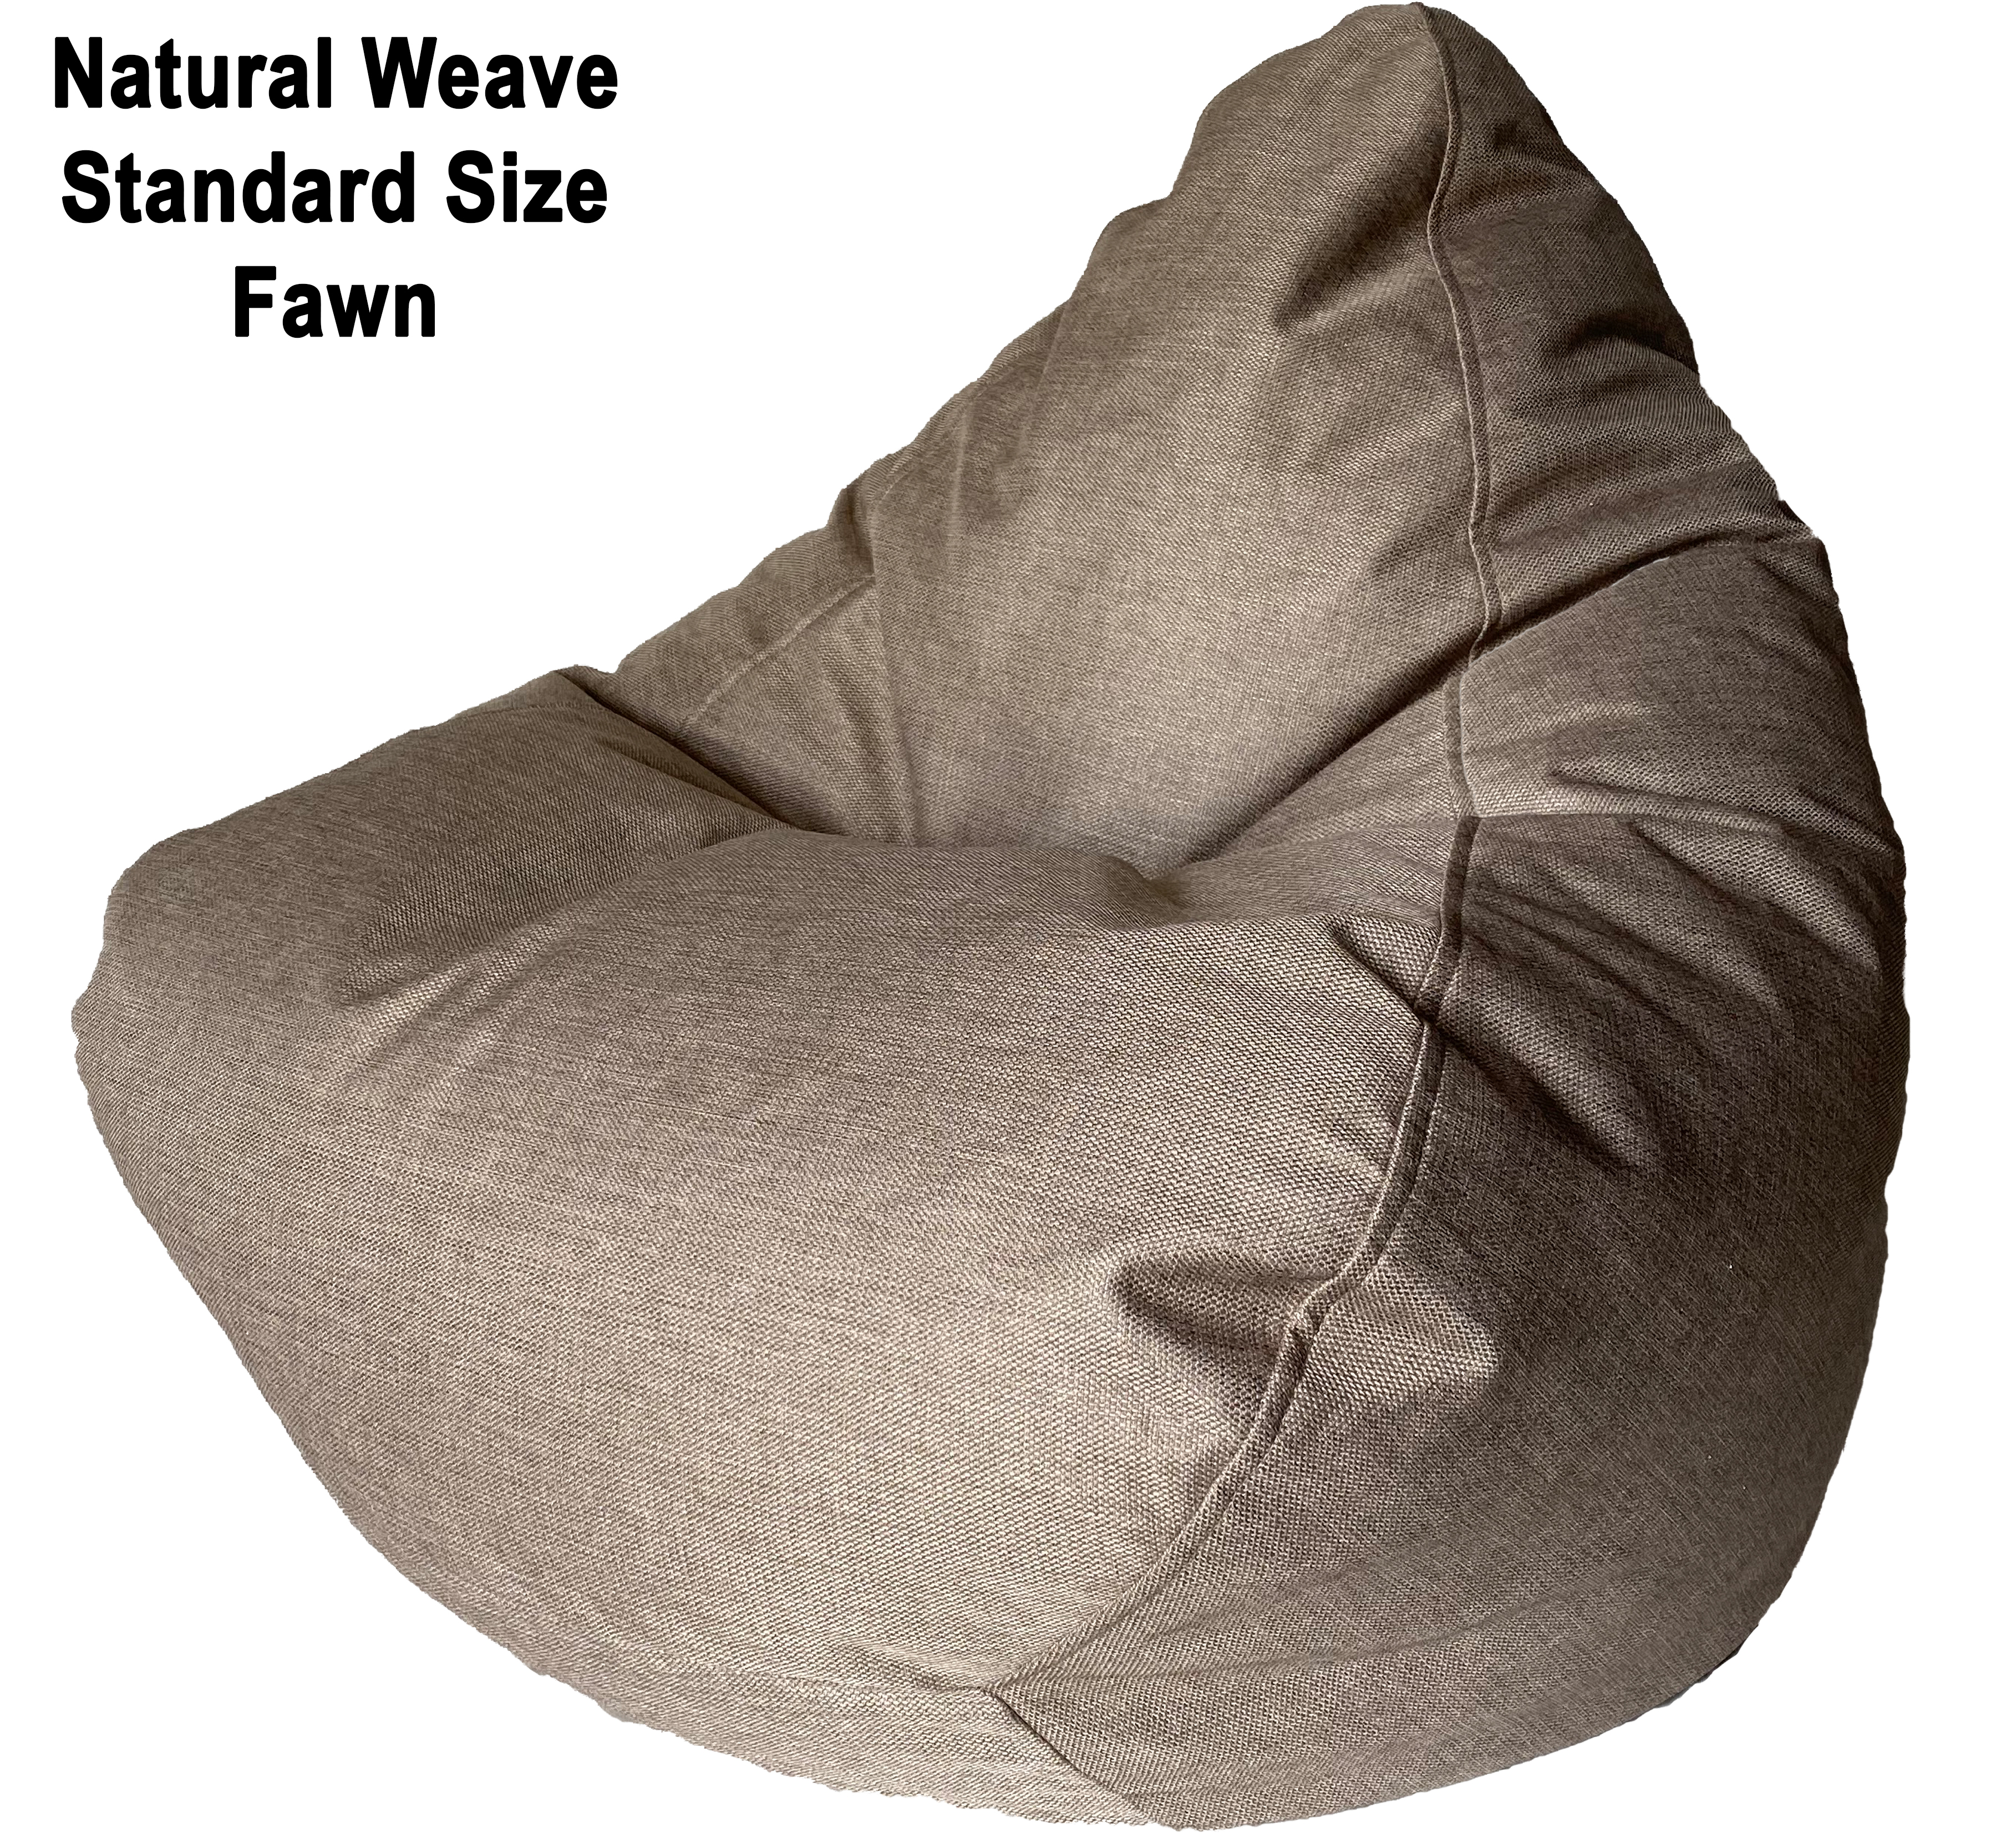 Fawn Natural Weave Standard Size